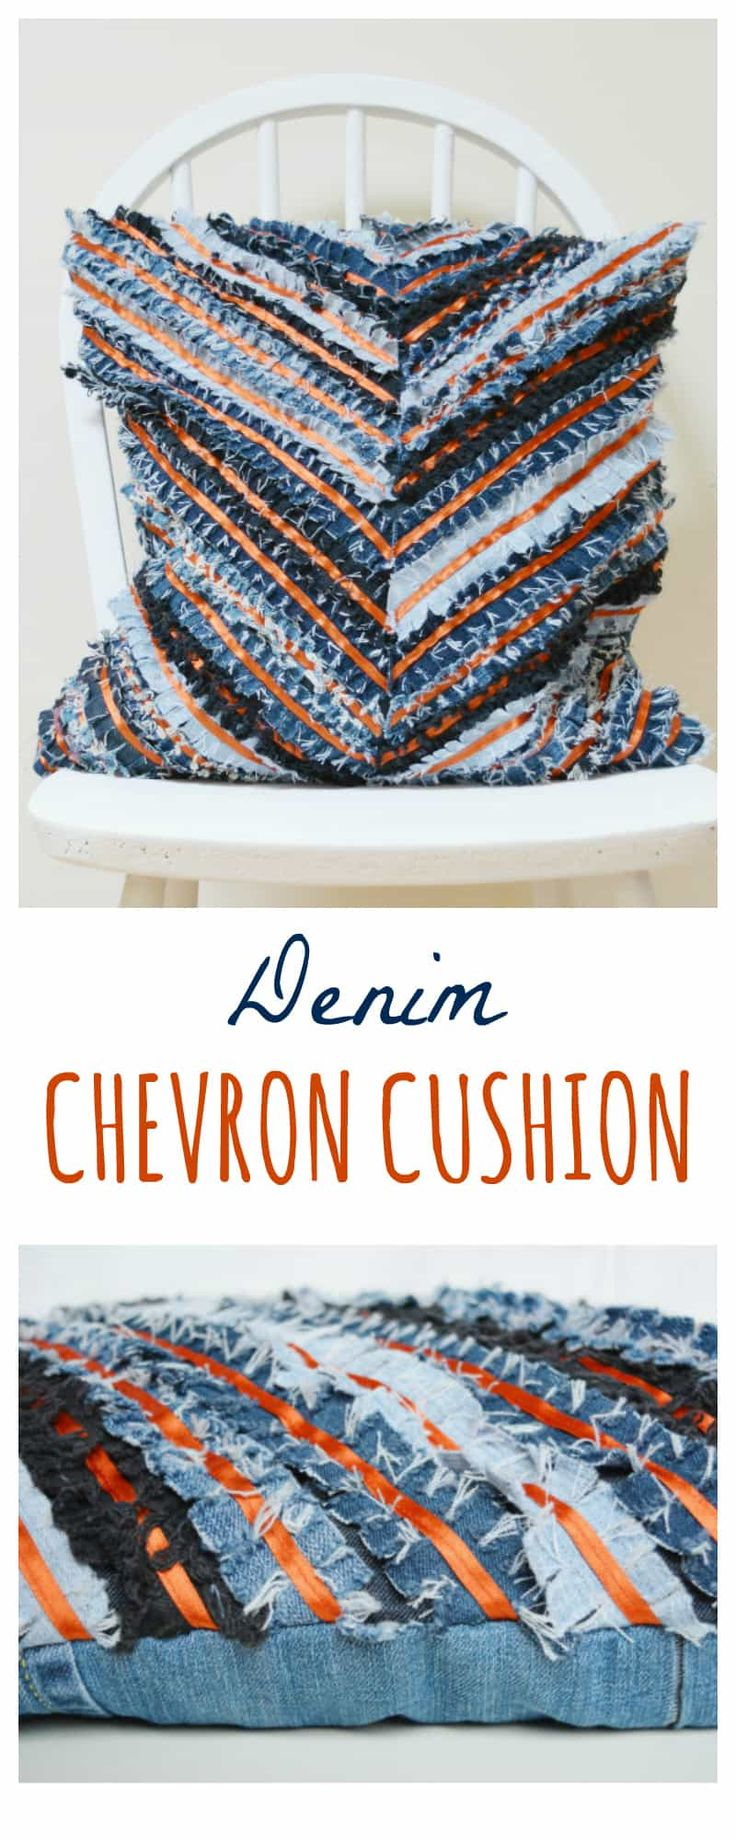 vicky myers creations » Blog Archive DIY Denim Chevron Cushion - vicky myers creations